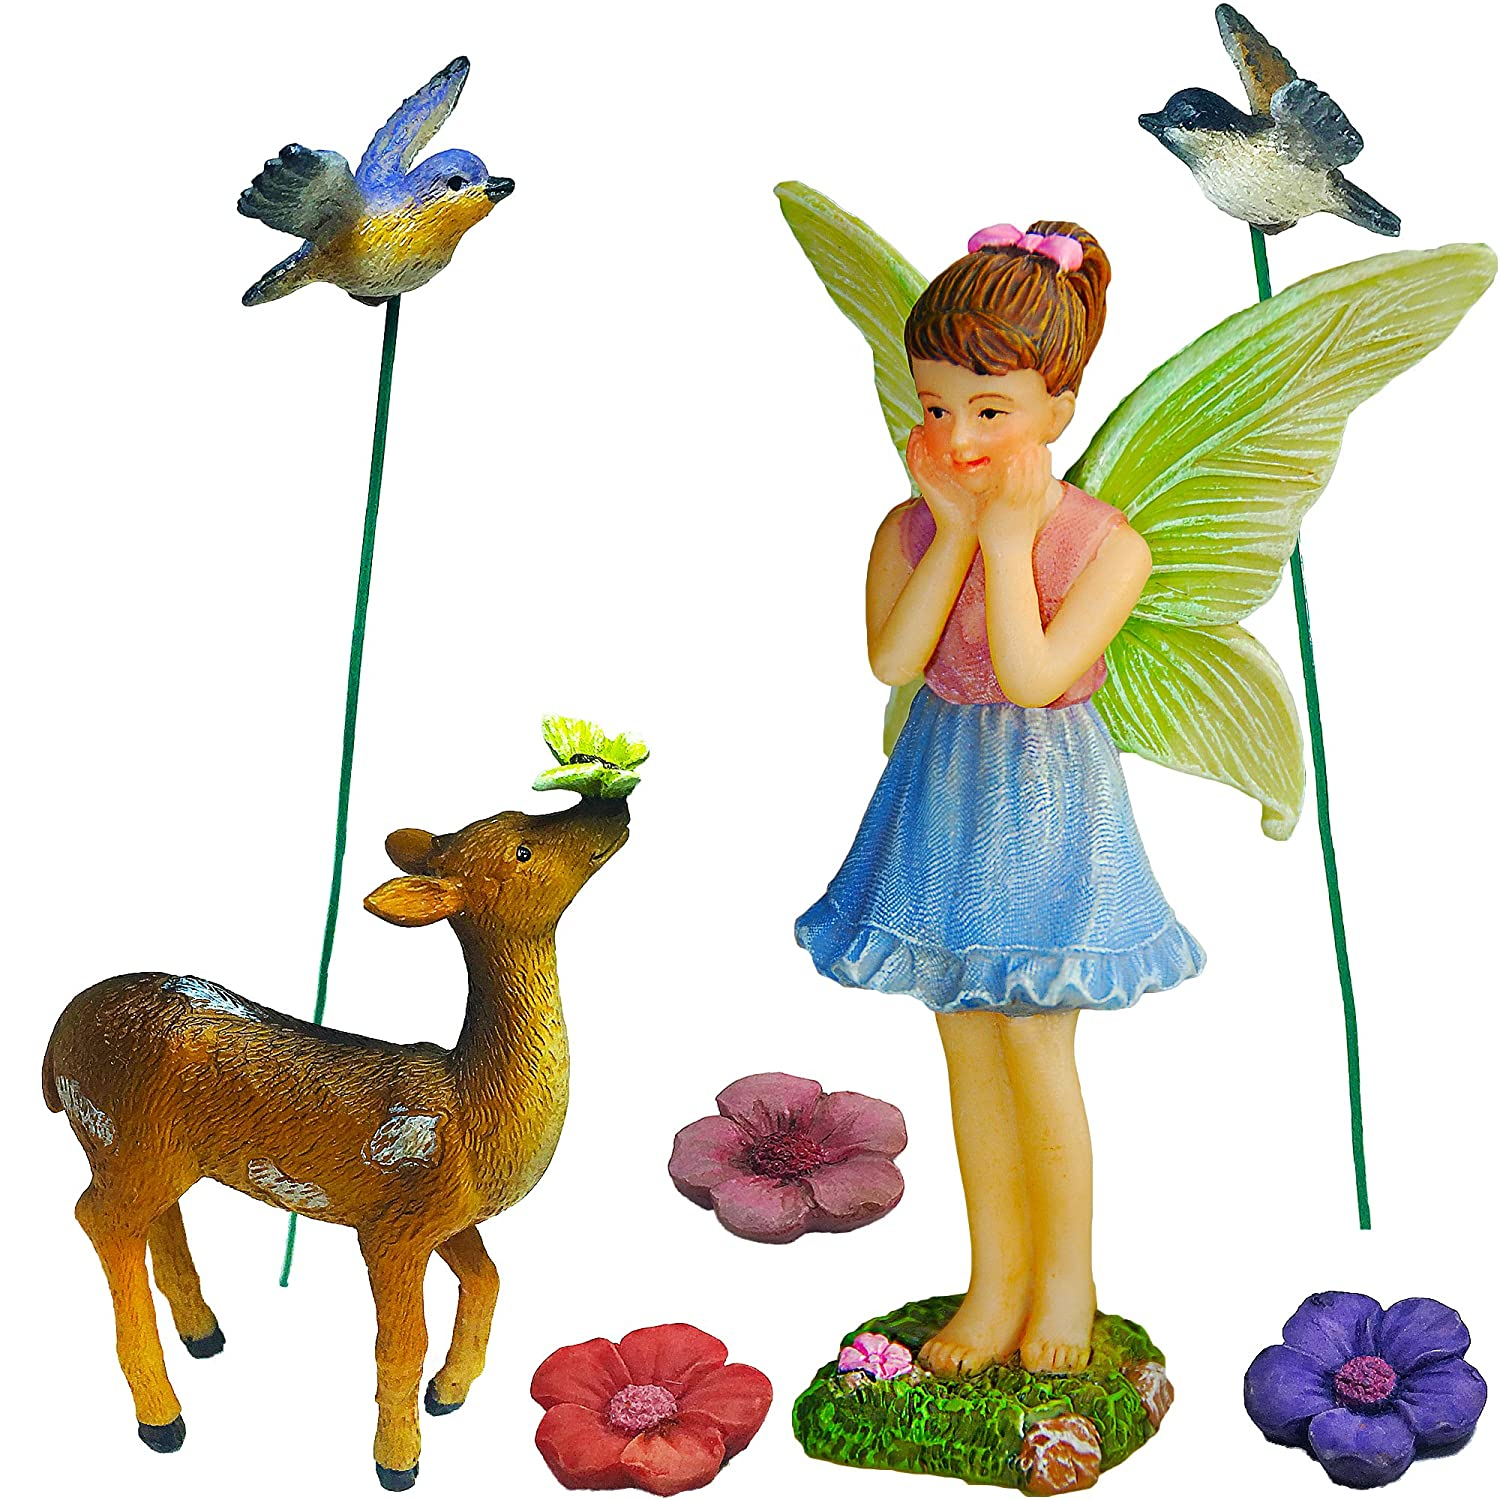 Mood Lab Fairy Garden - Miniature Accessories and Figurines Kit - Hand Painted Deer Set of 7 pcs for Outdoor or House Decor